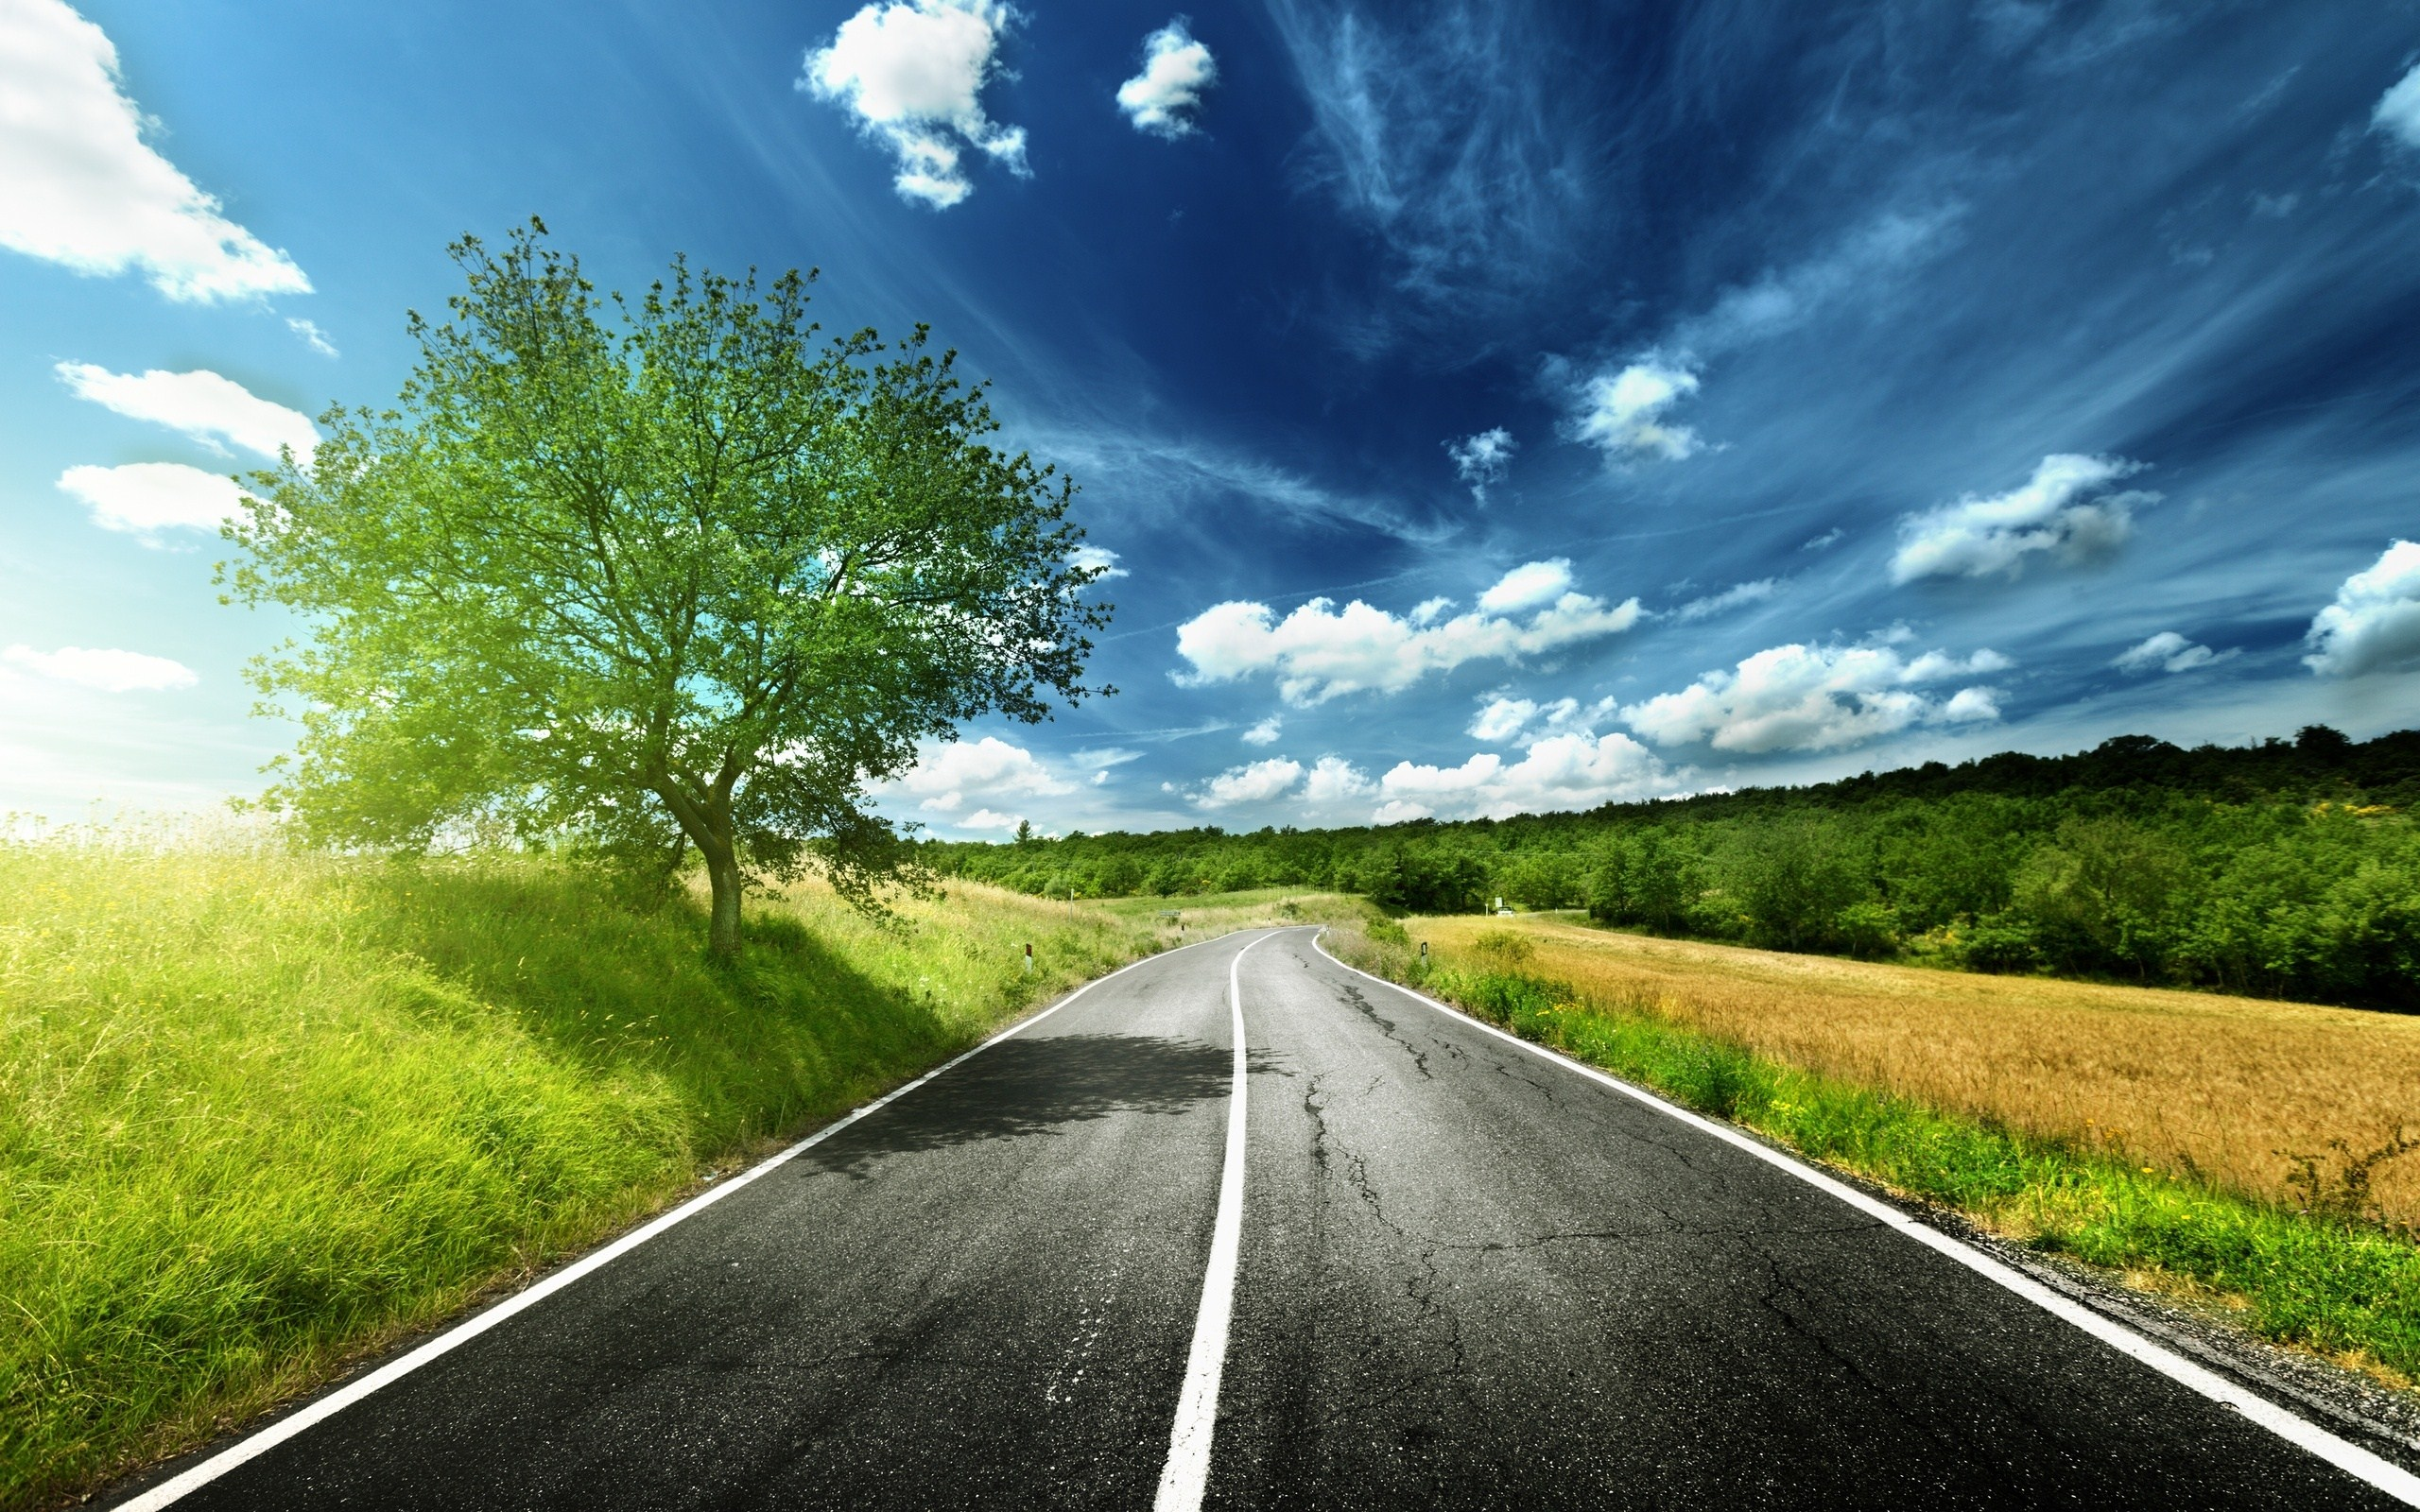 Road Line Asphalt Wallpaper 2560x1600